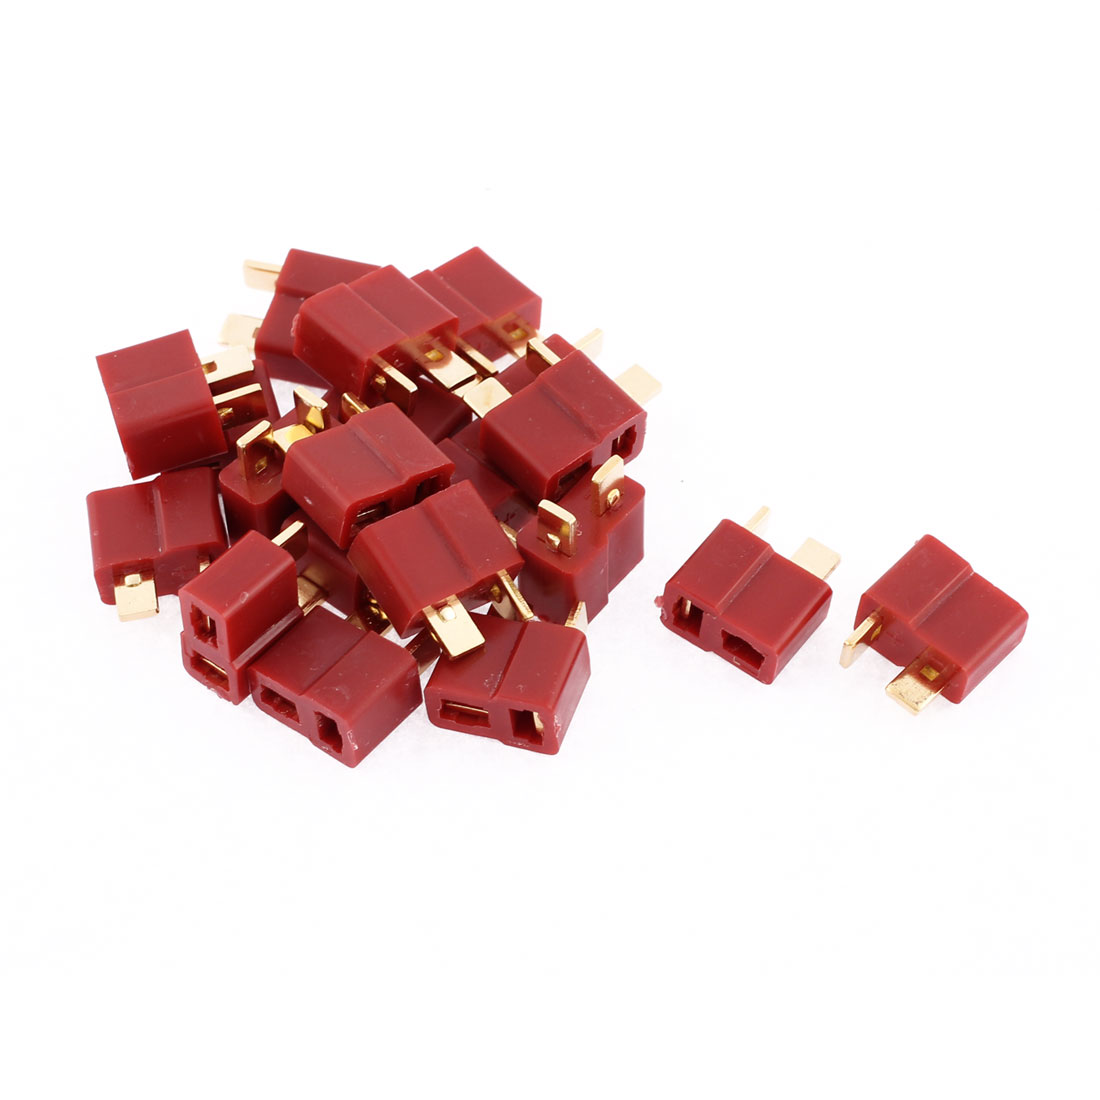 20 Pcs T Female Connectors for RC Airplane Aircraft LiPo Battery ESC